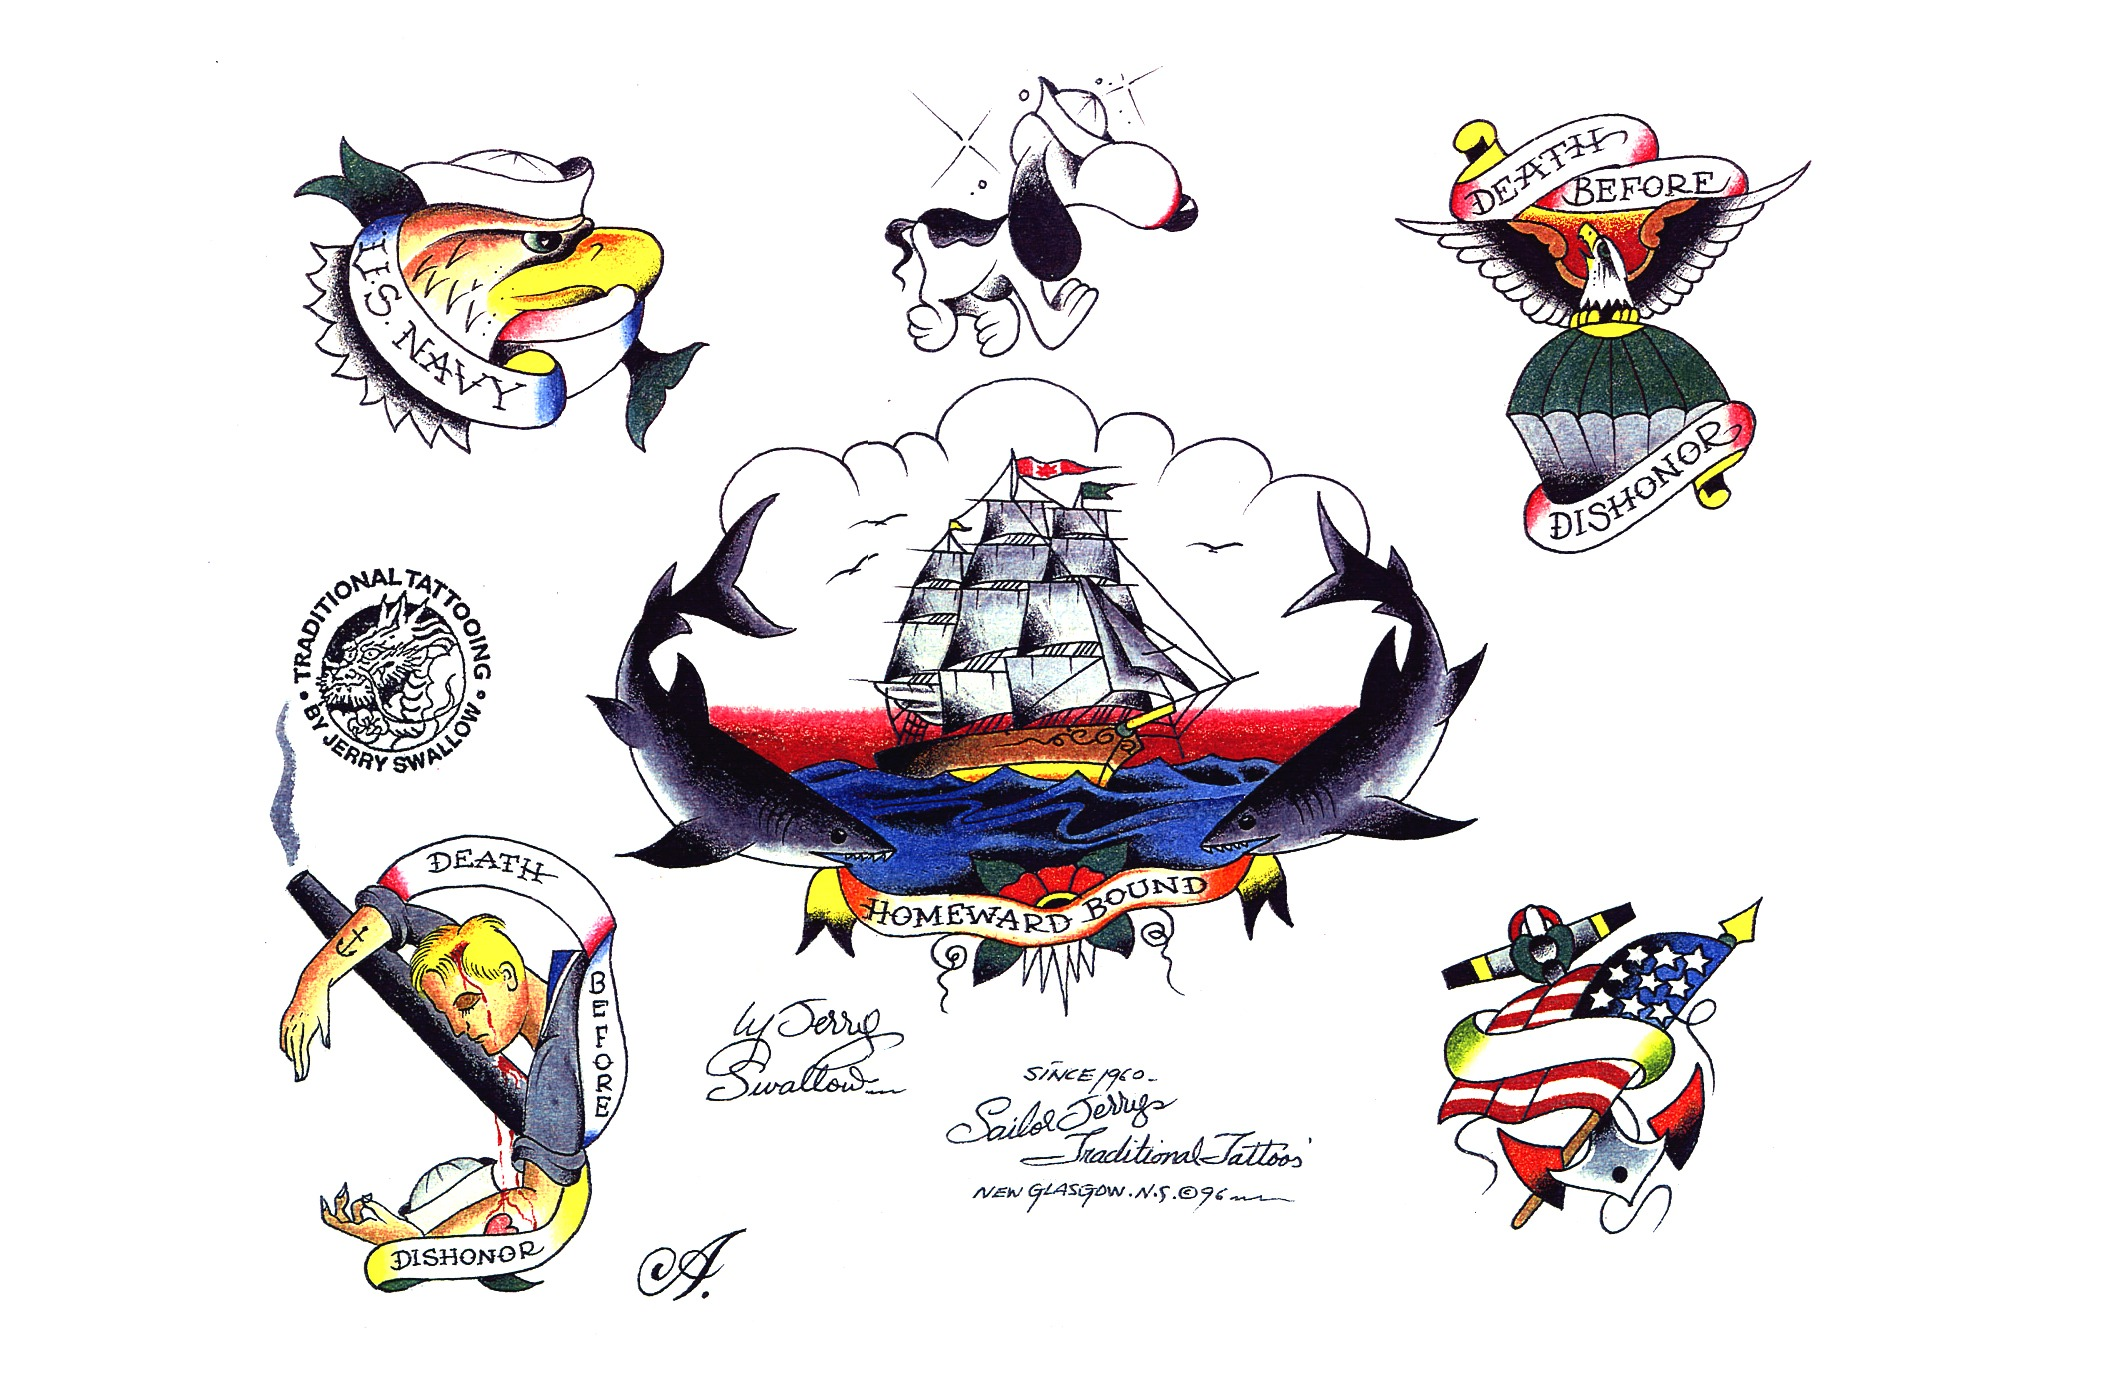 Tattoo designs by Sailor Jerry.